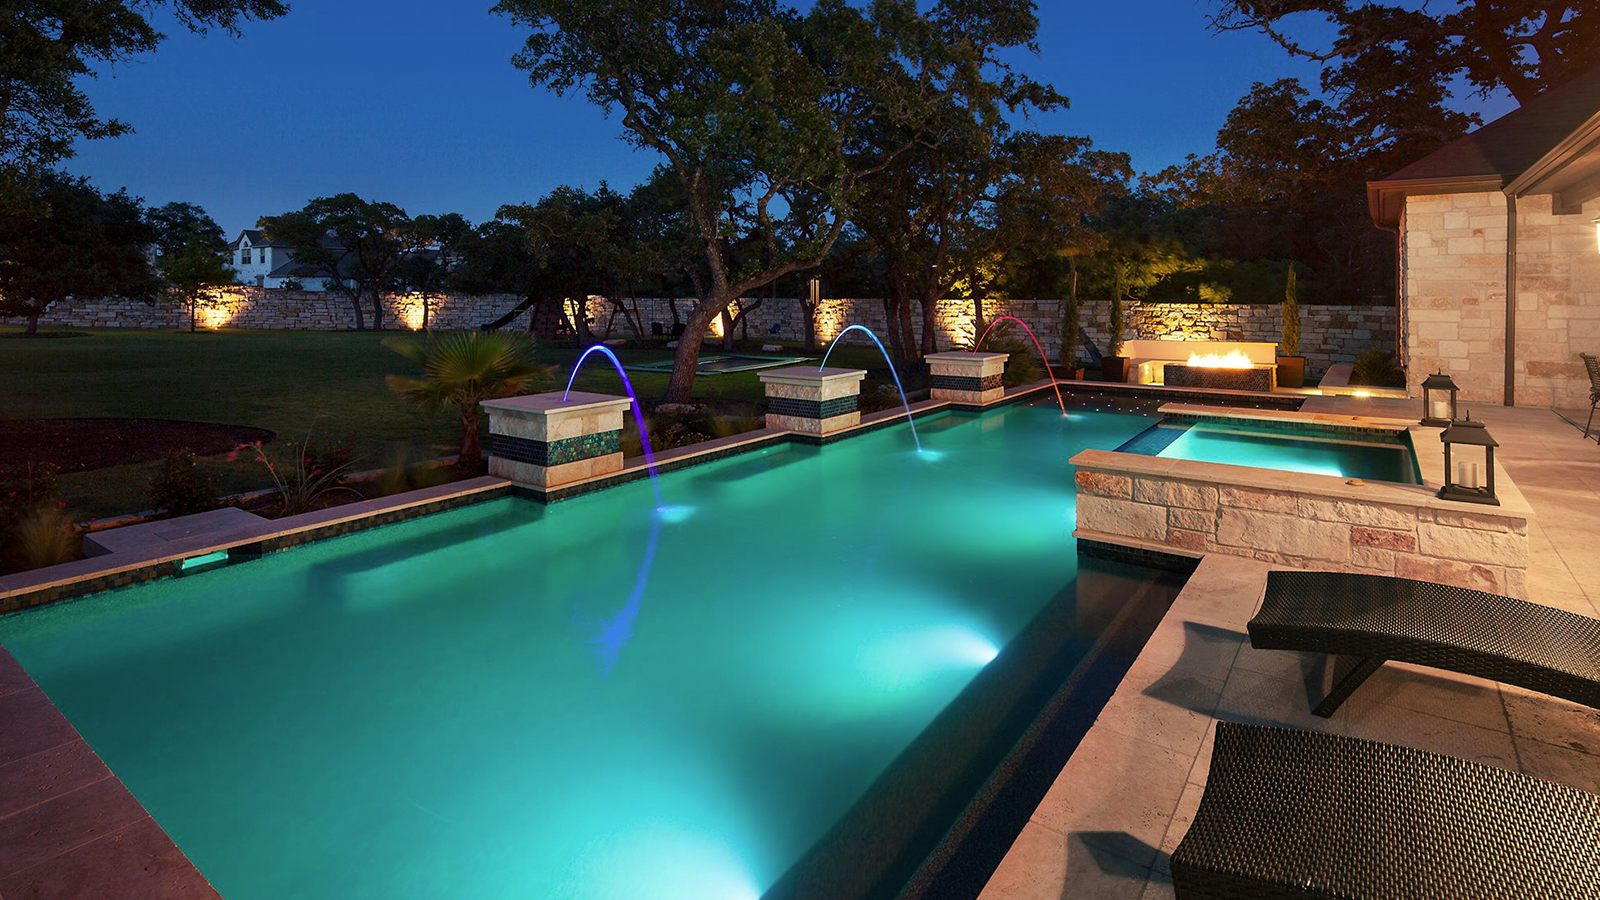 NuVision Pools image 1